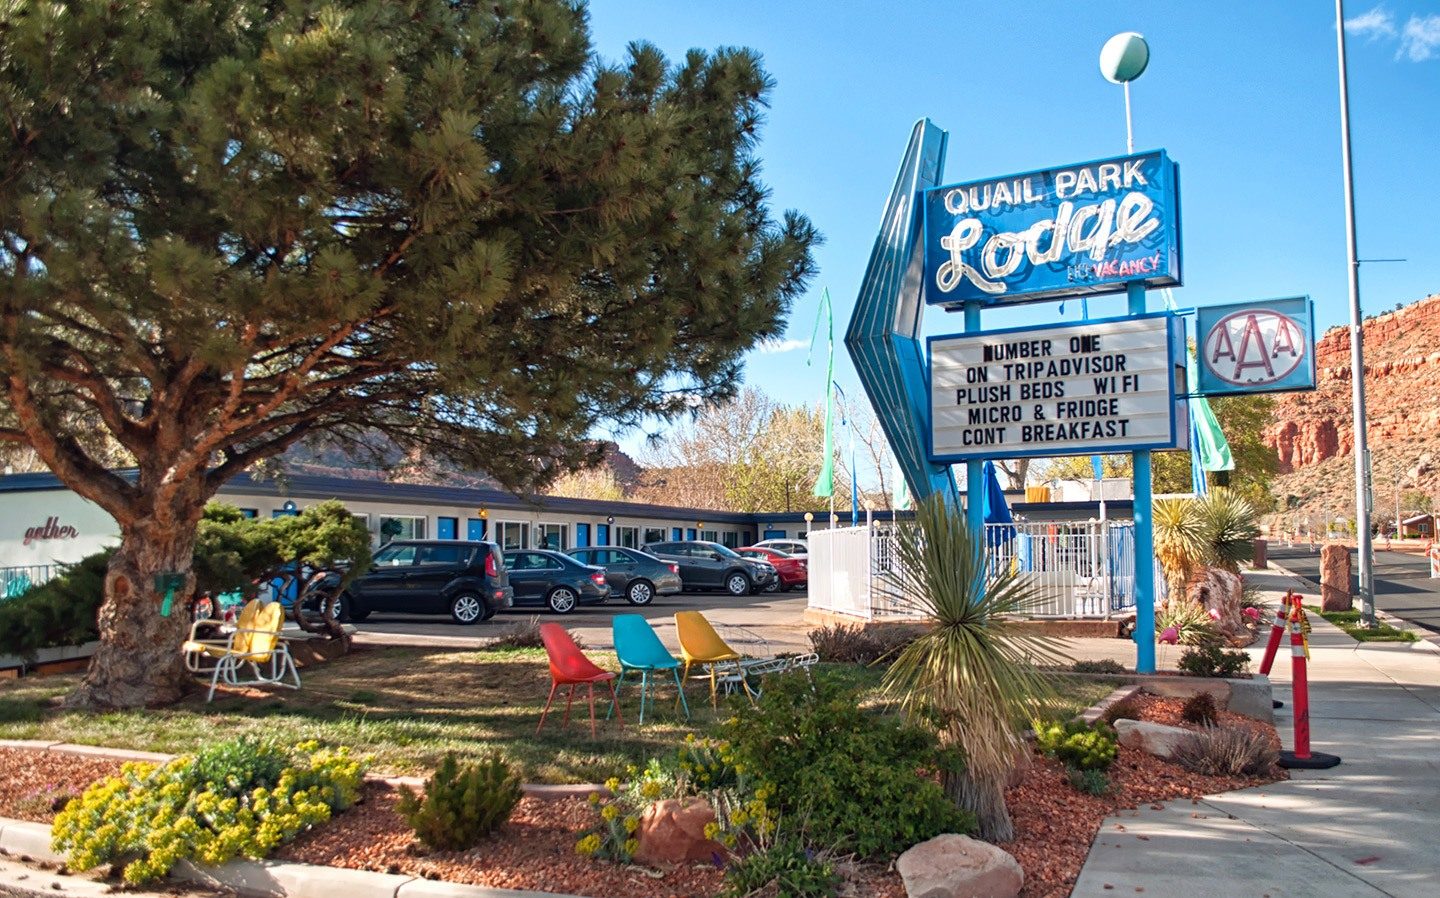 Quail Park Lodge motel in Kanab, Utah